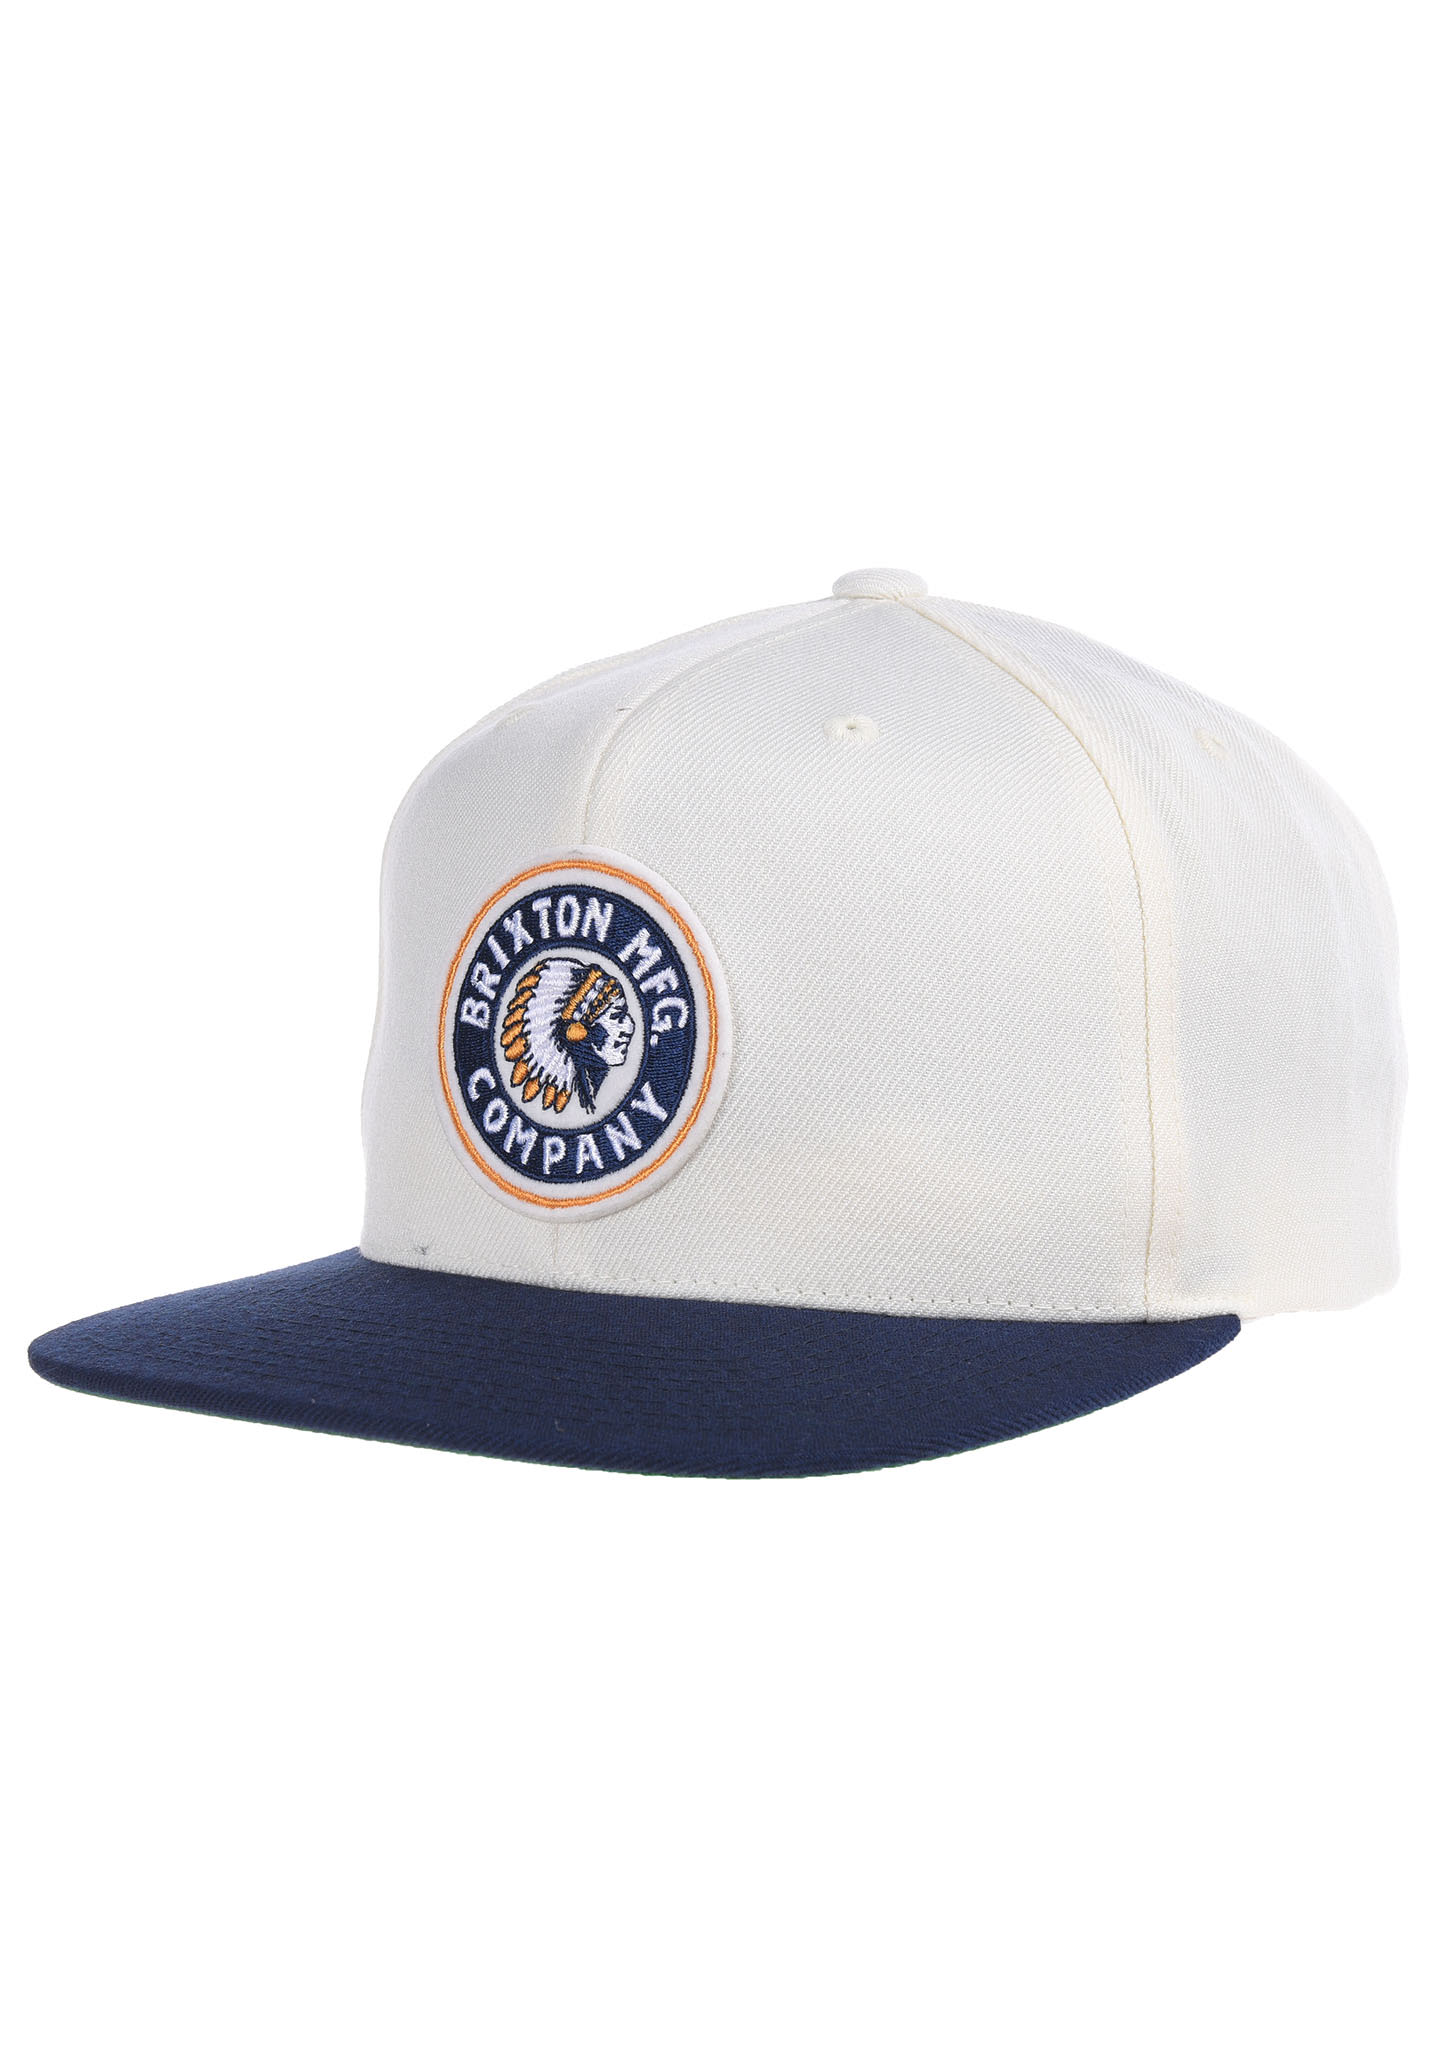 c7811411 BRIXTON Rival - Snapback Cap - White - Planet Sports